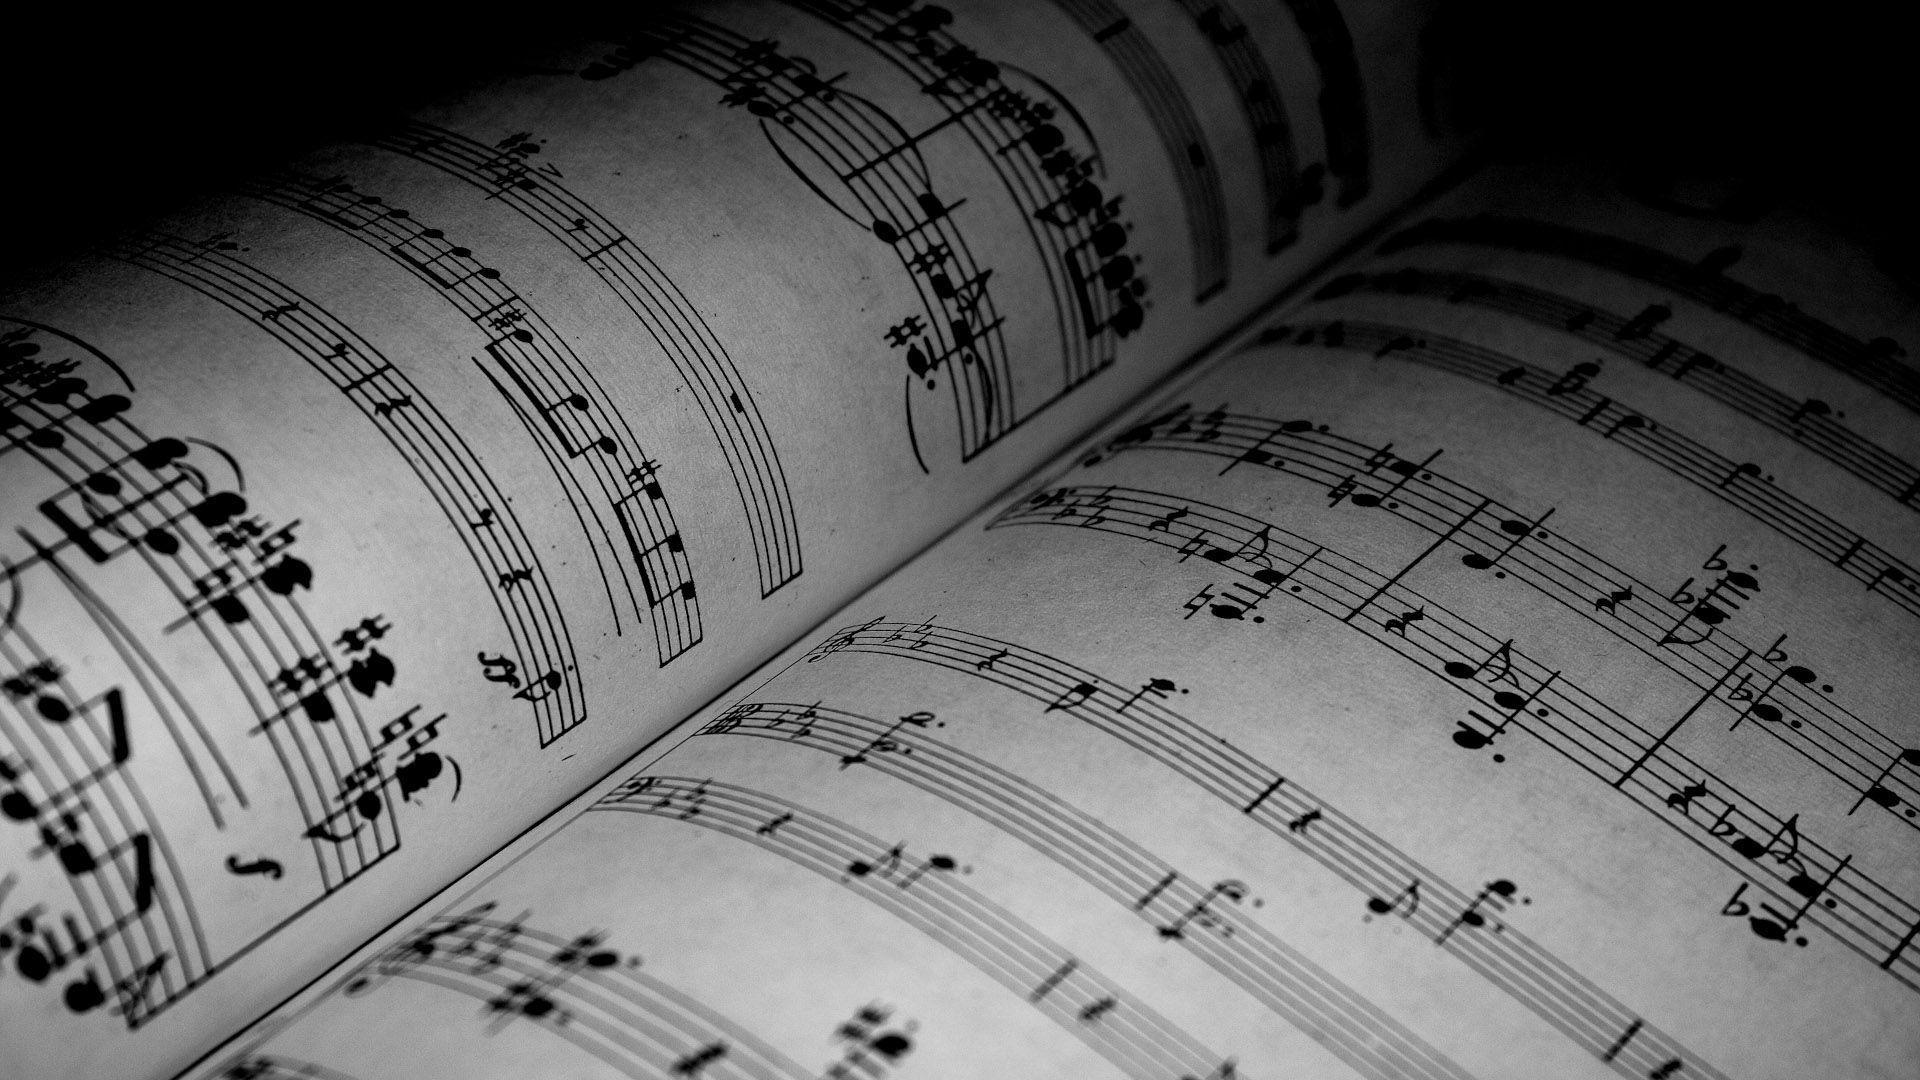 Music Notes Wallpapers 16213 1920x1080 px